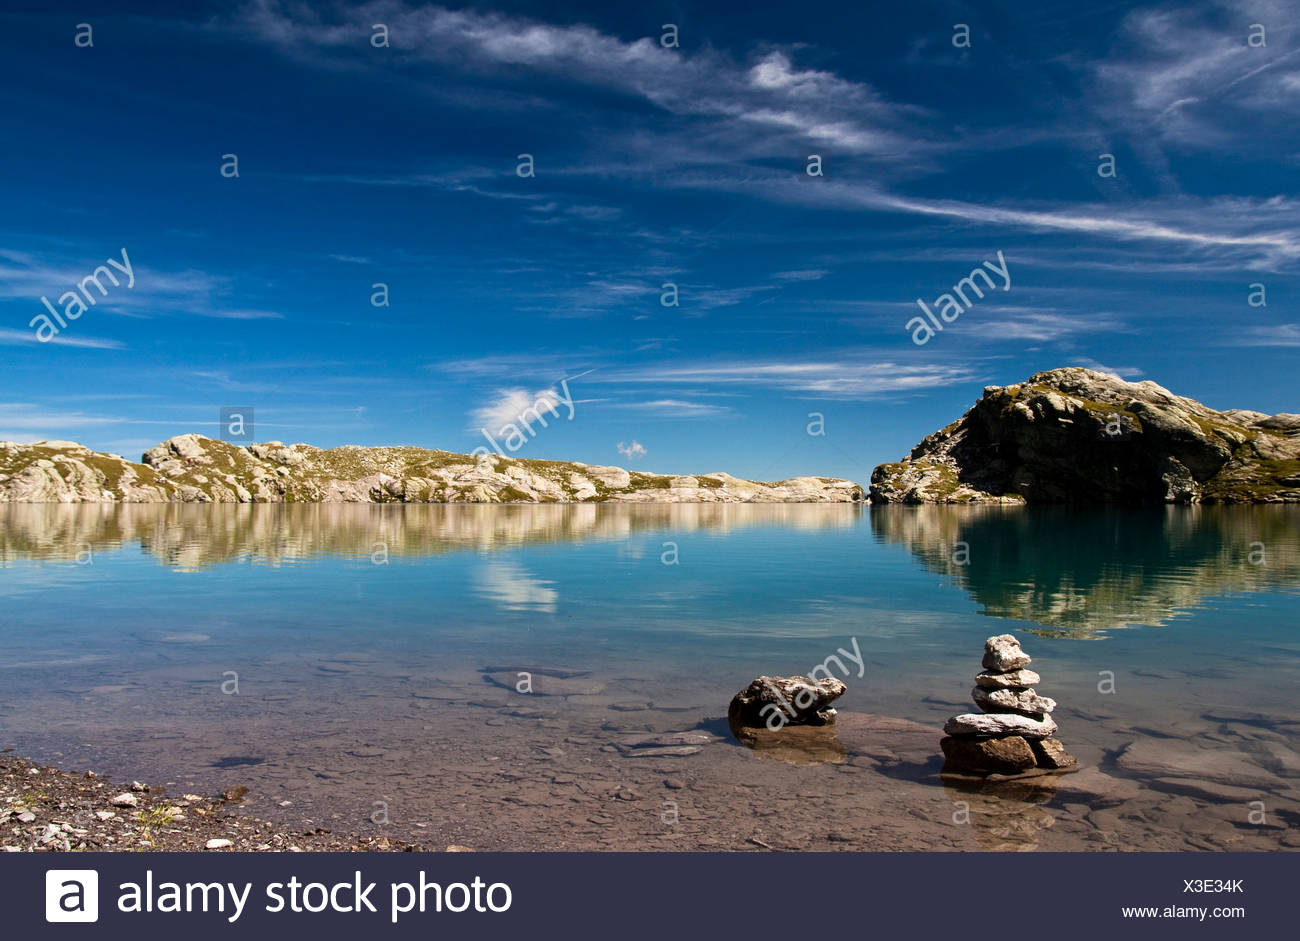 Cairns in the Schottensee lake below the Pizol massif, Bad Ragaz, Heidi country, Canton St. Gallen, Switzerland, Europe Stock Photo